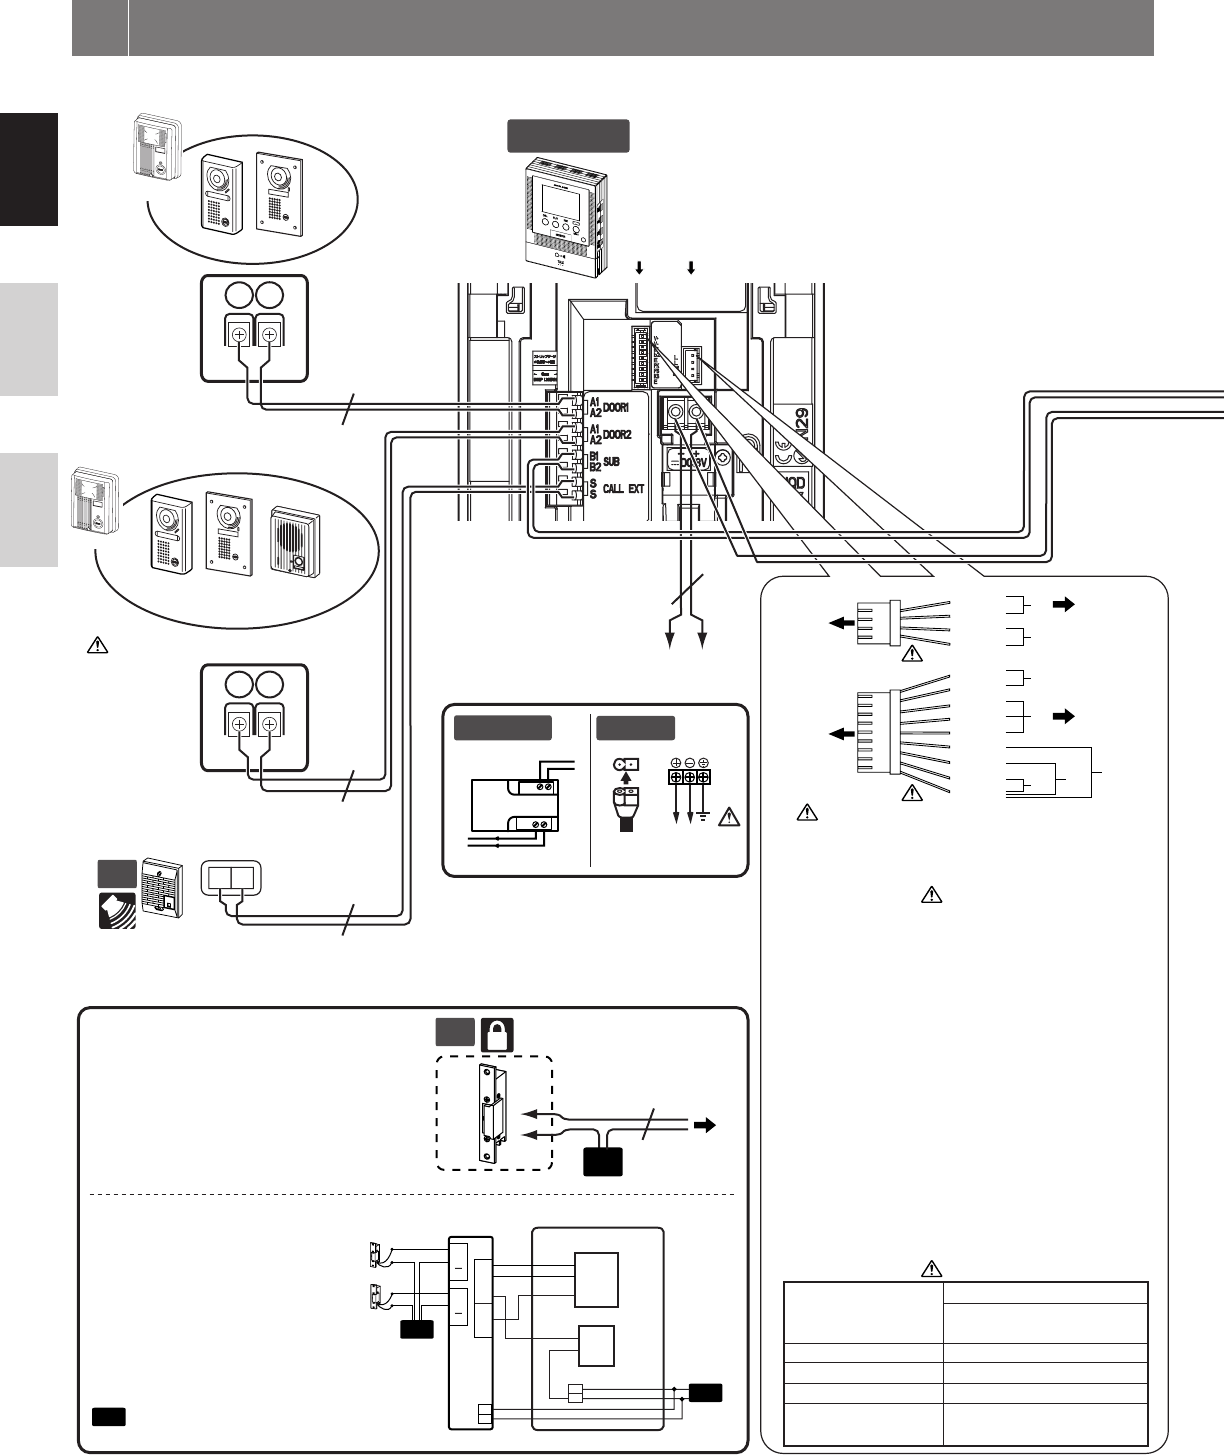 bfb05761 b44c 422c 9473 8156de703524 bg4 aiphone jf series wiring diagram aiphone wiring diagrams collection  at gsmx.co